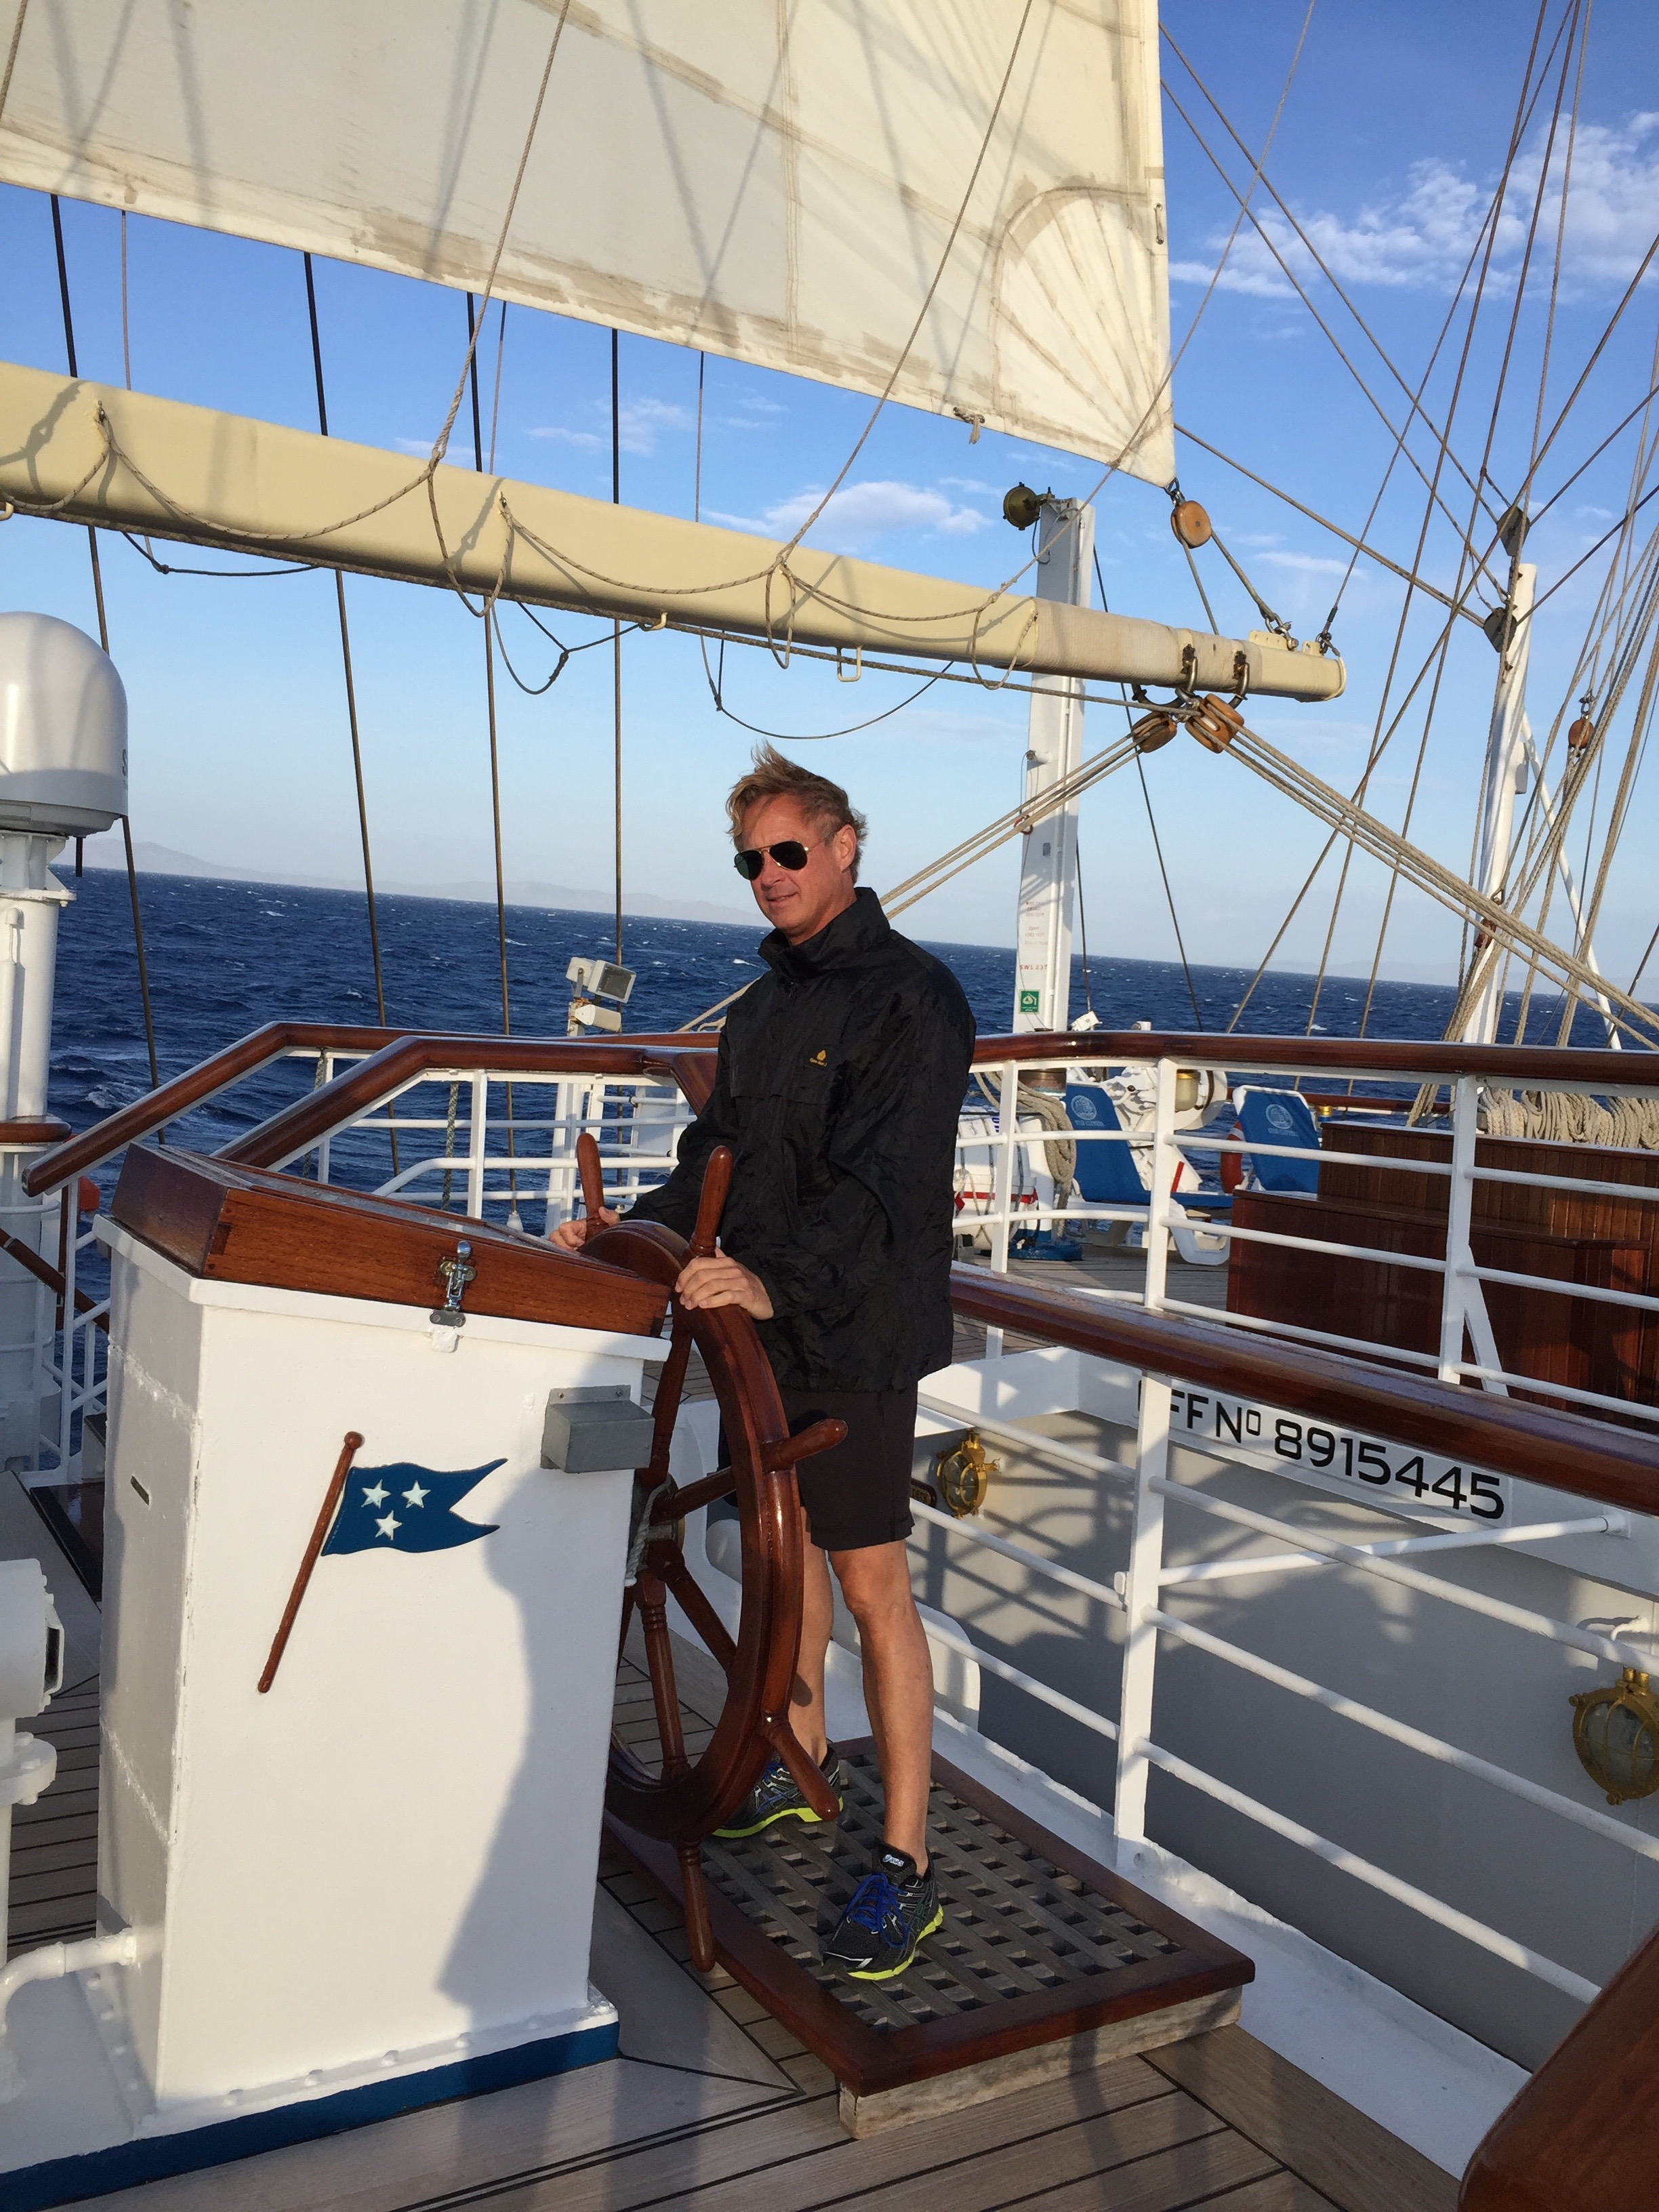 From Athens to Turkey on the Star Clipper